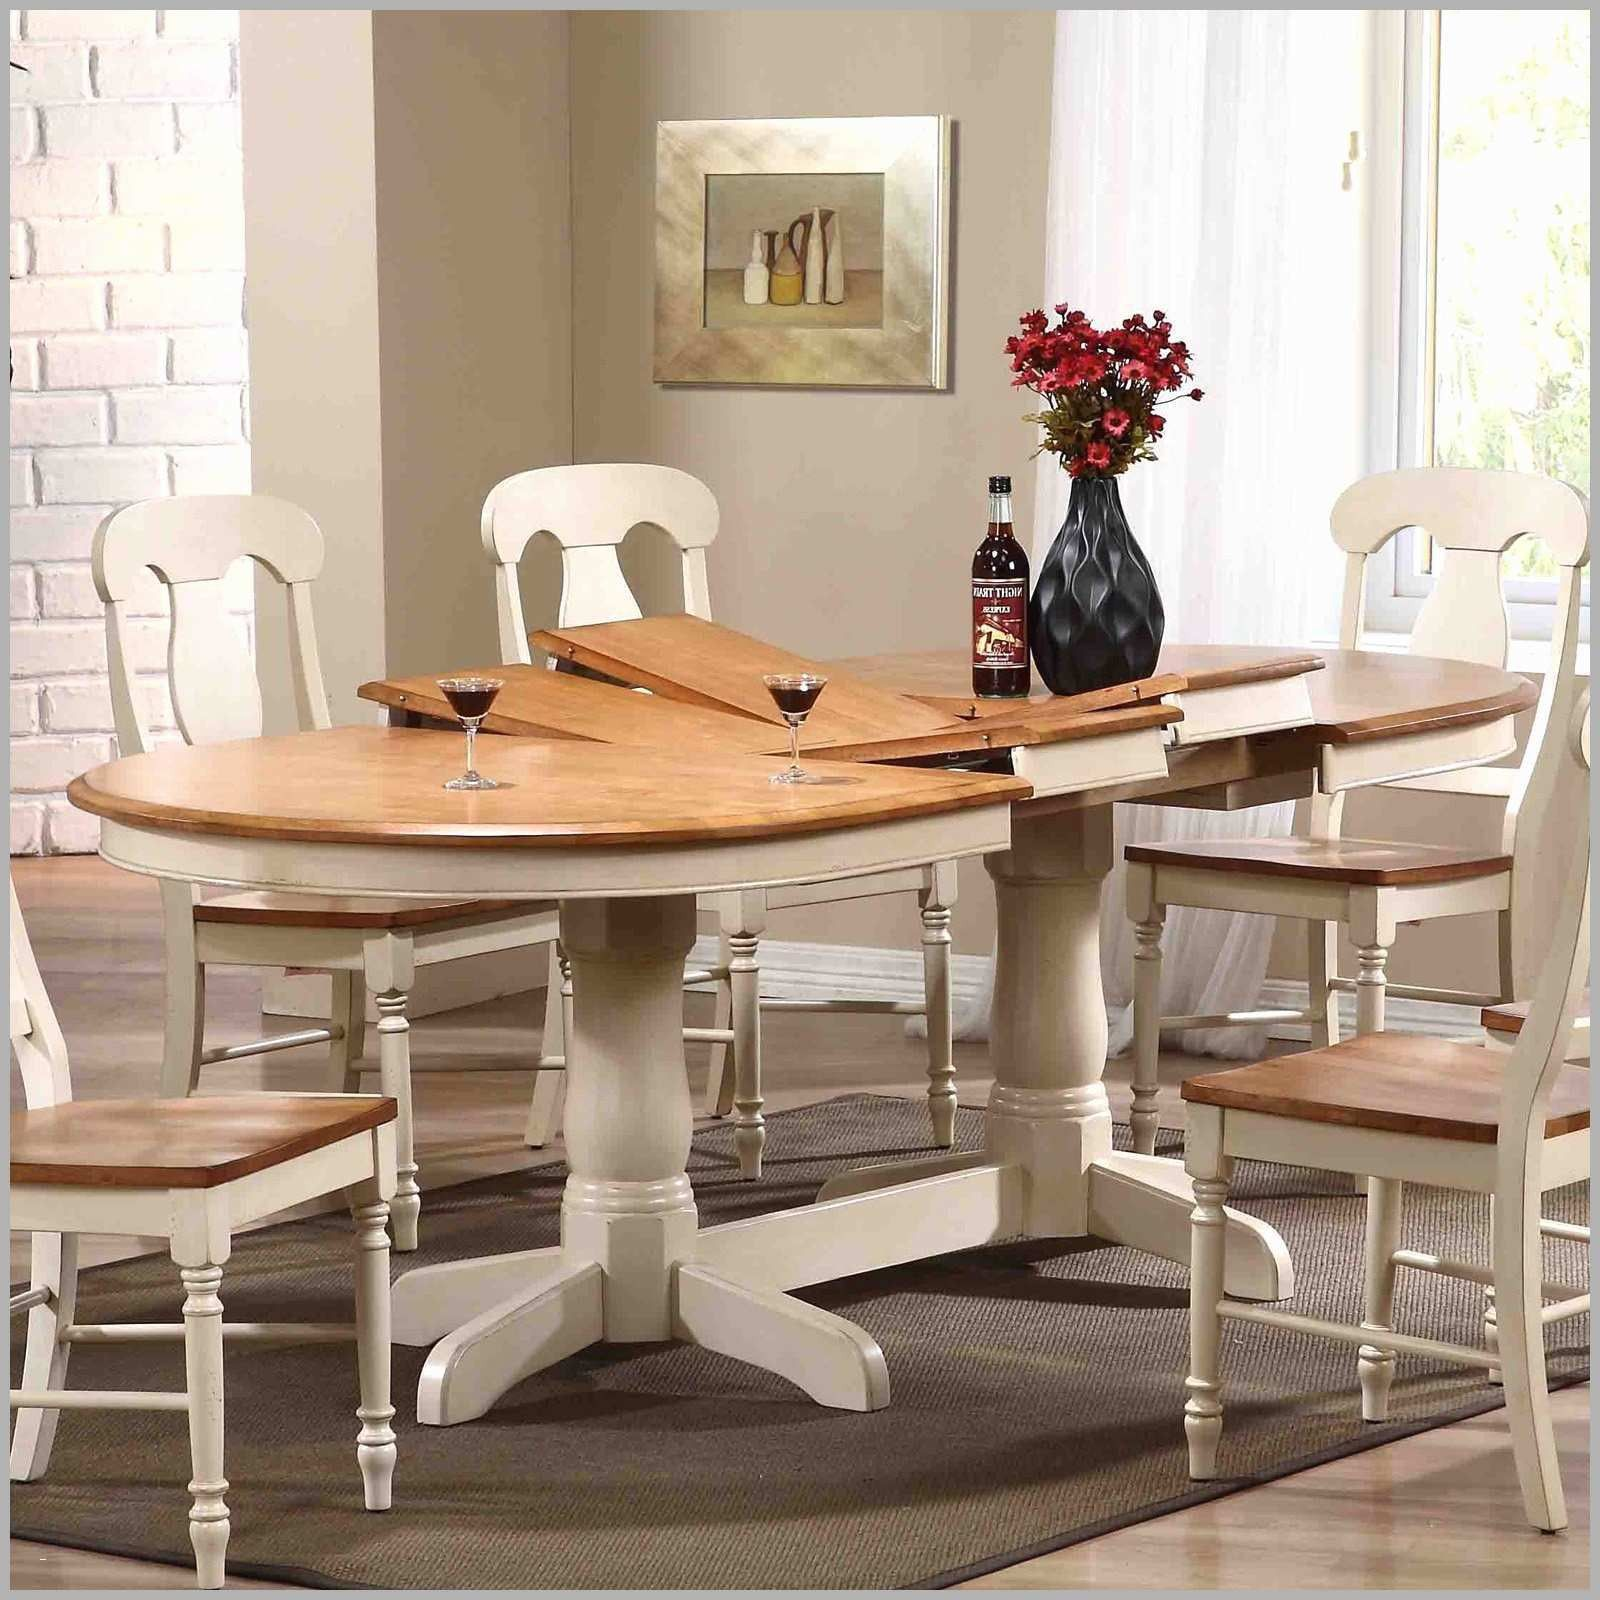 Best Of Farmhouse Kitchen Table Extendable Furniture Biscotti